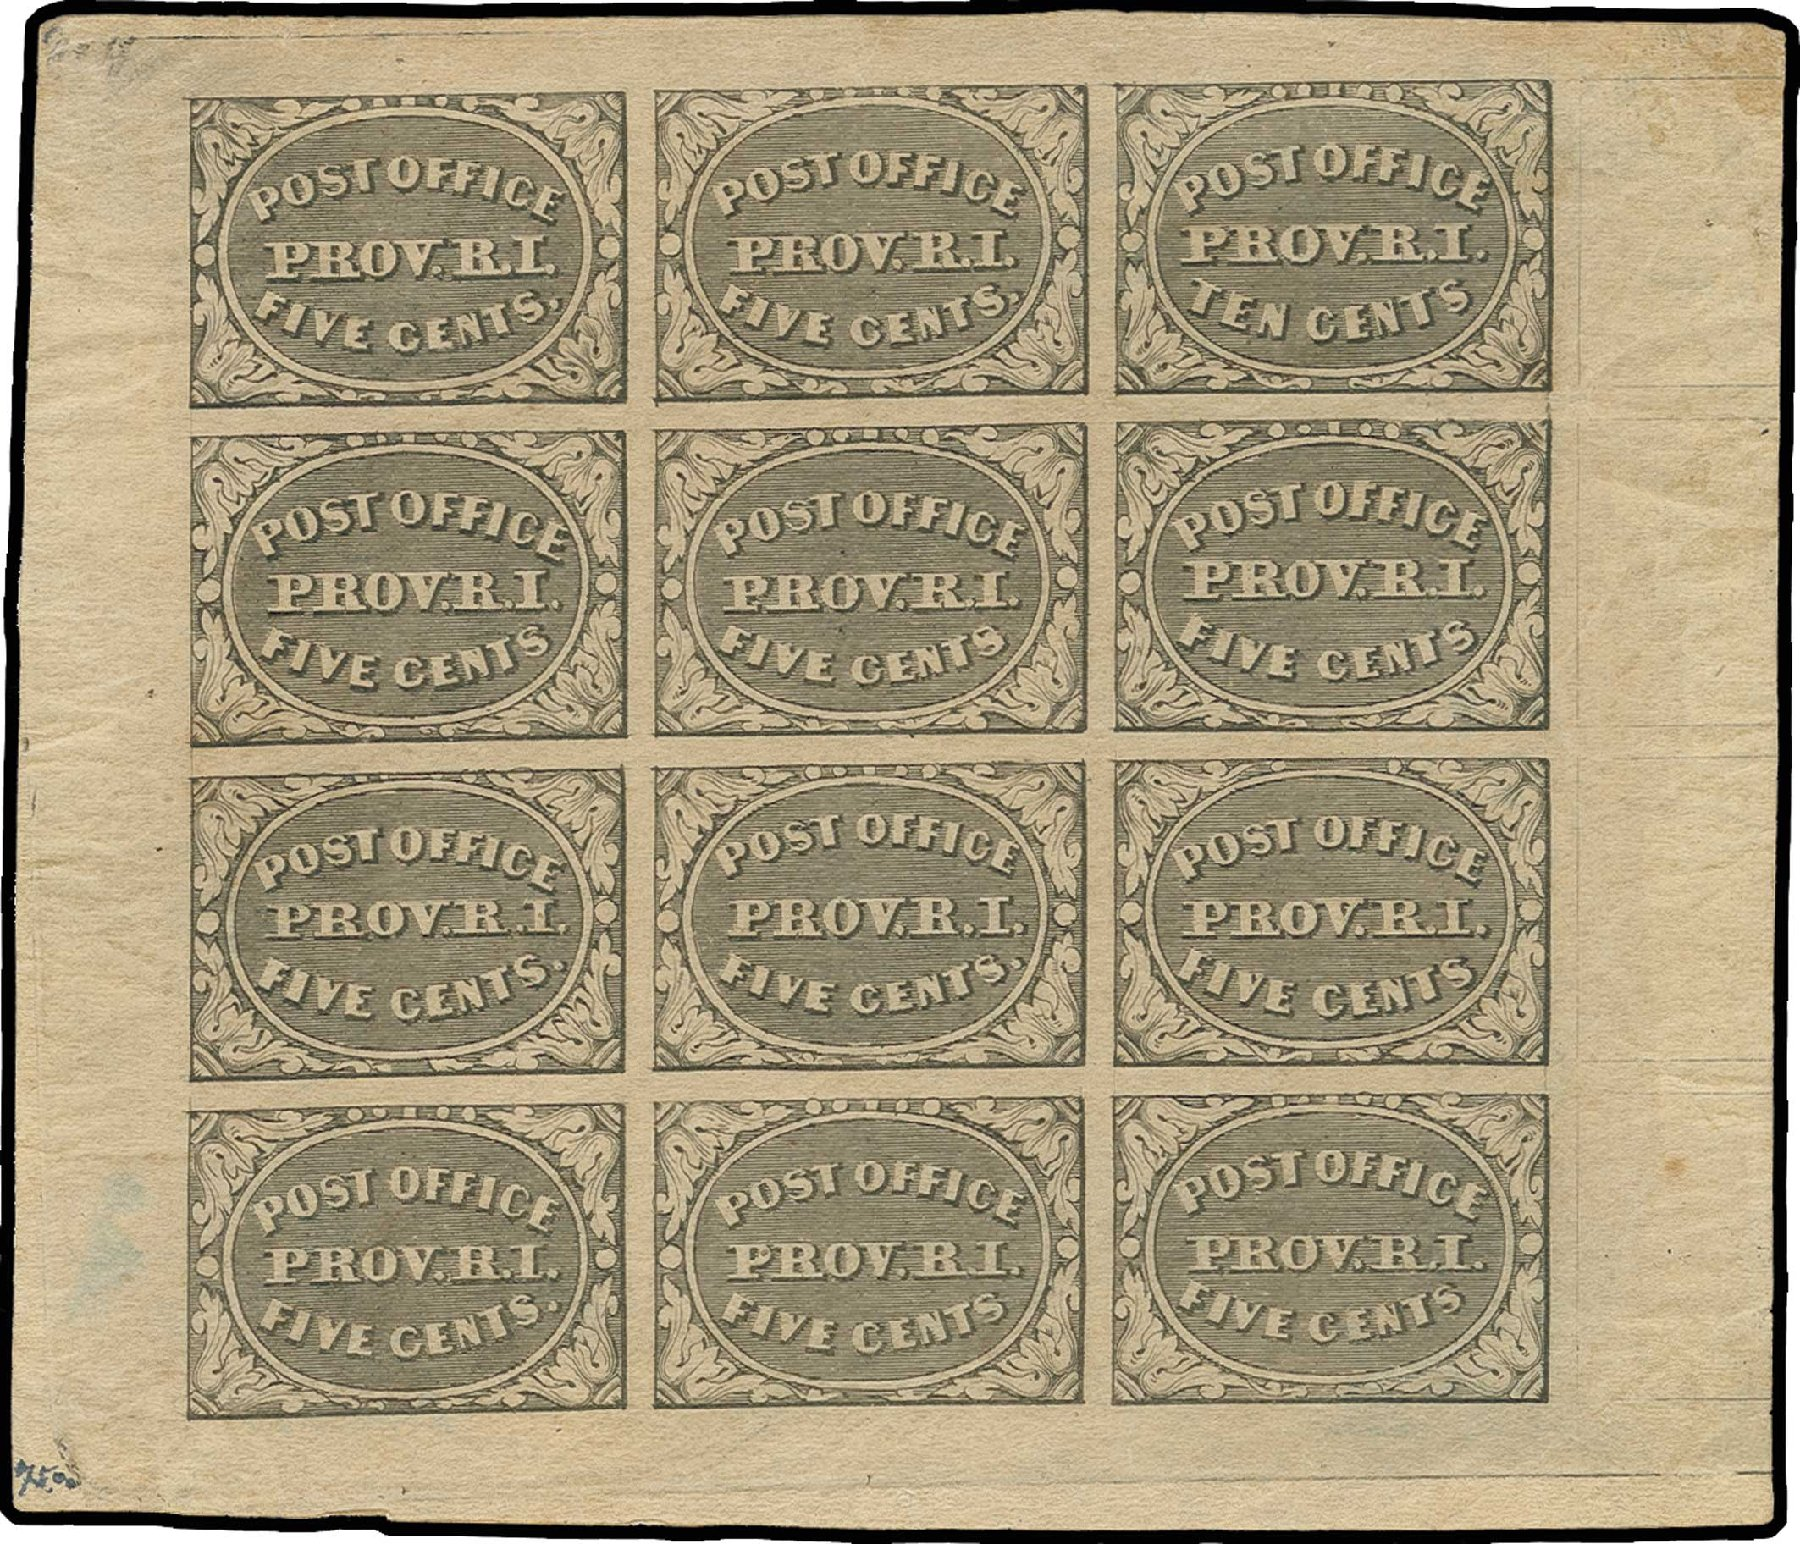 US Stamp Price Scott Catalogue 10X2: 5c 1846 Providence Postmasters Provisional. H.R. Harmer, Jun 2013, Sale 3003, Lot 1003